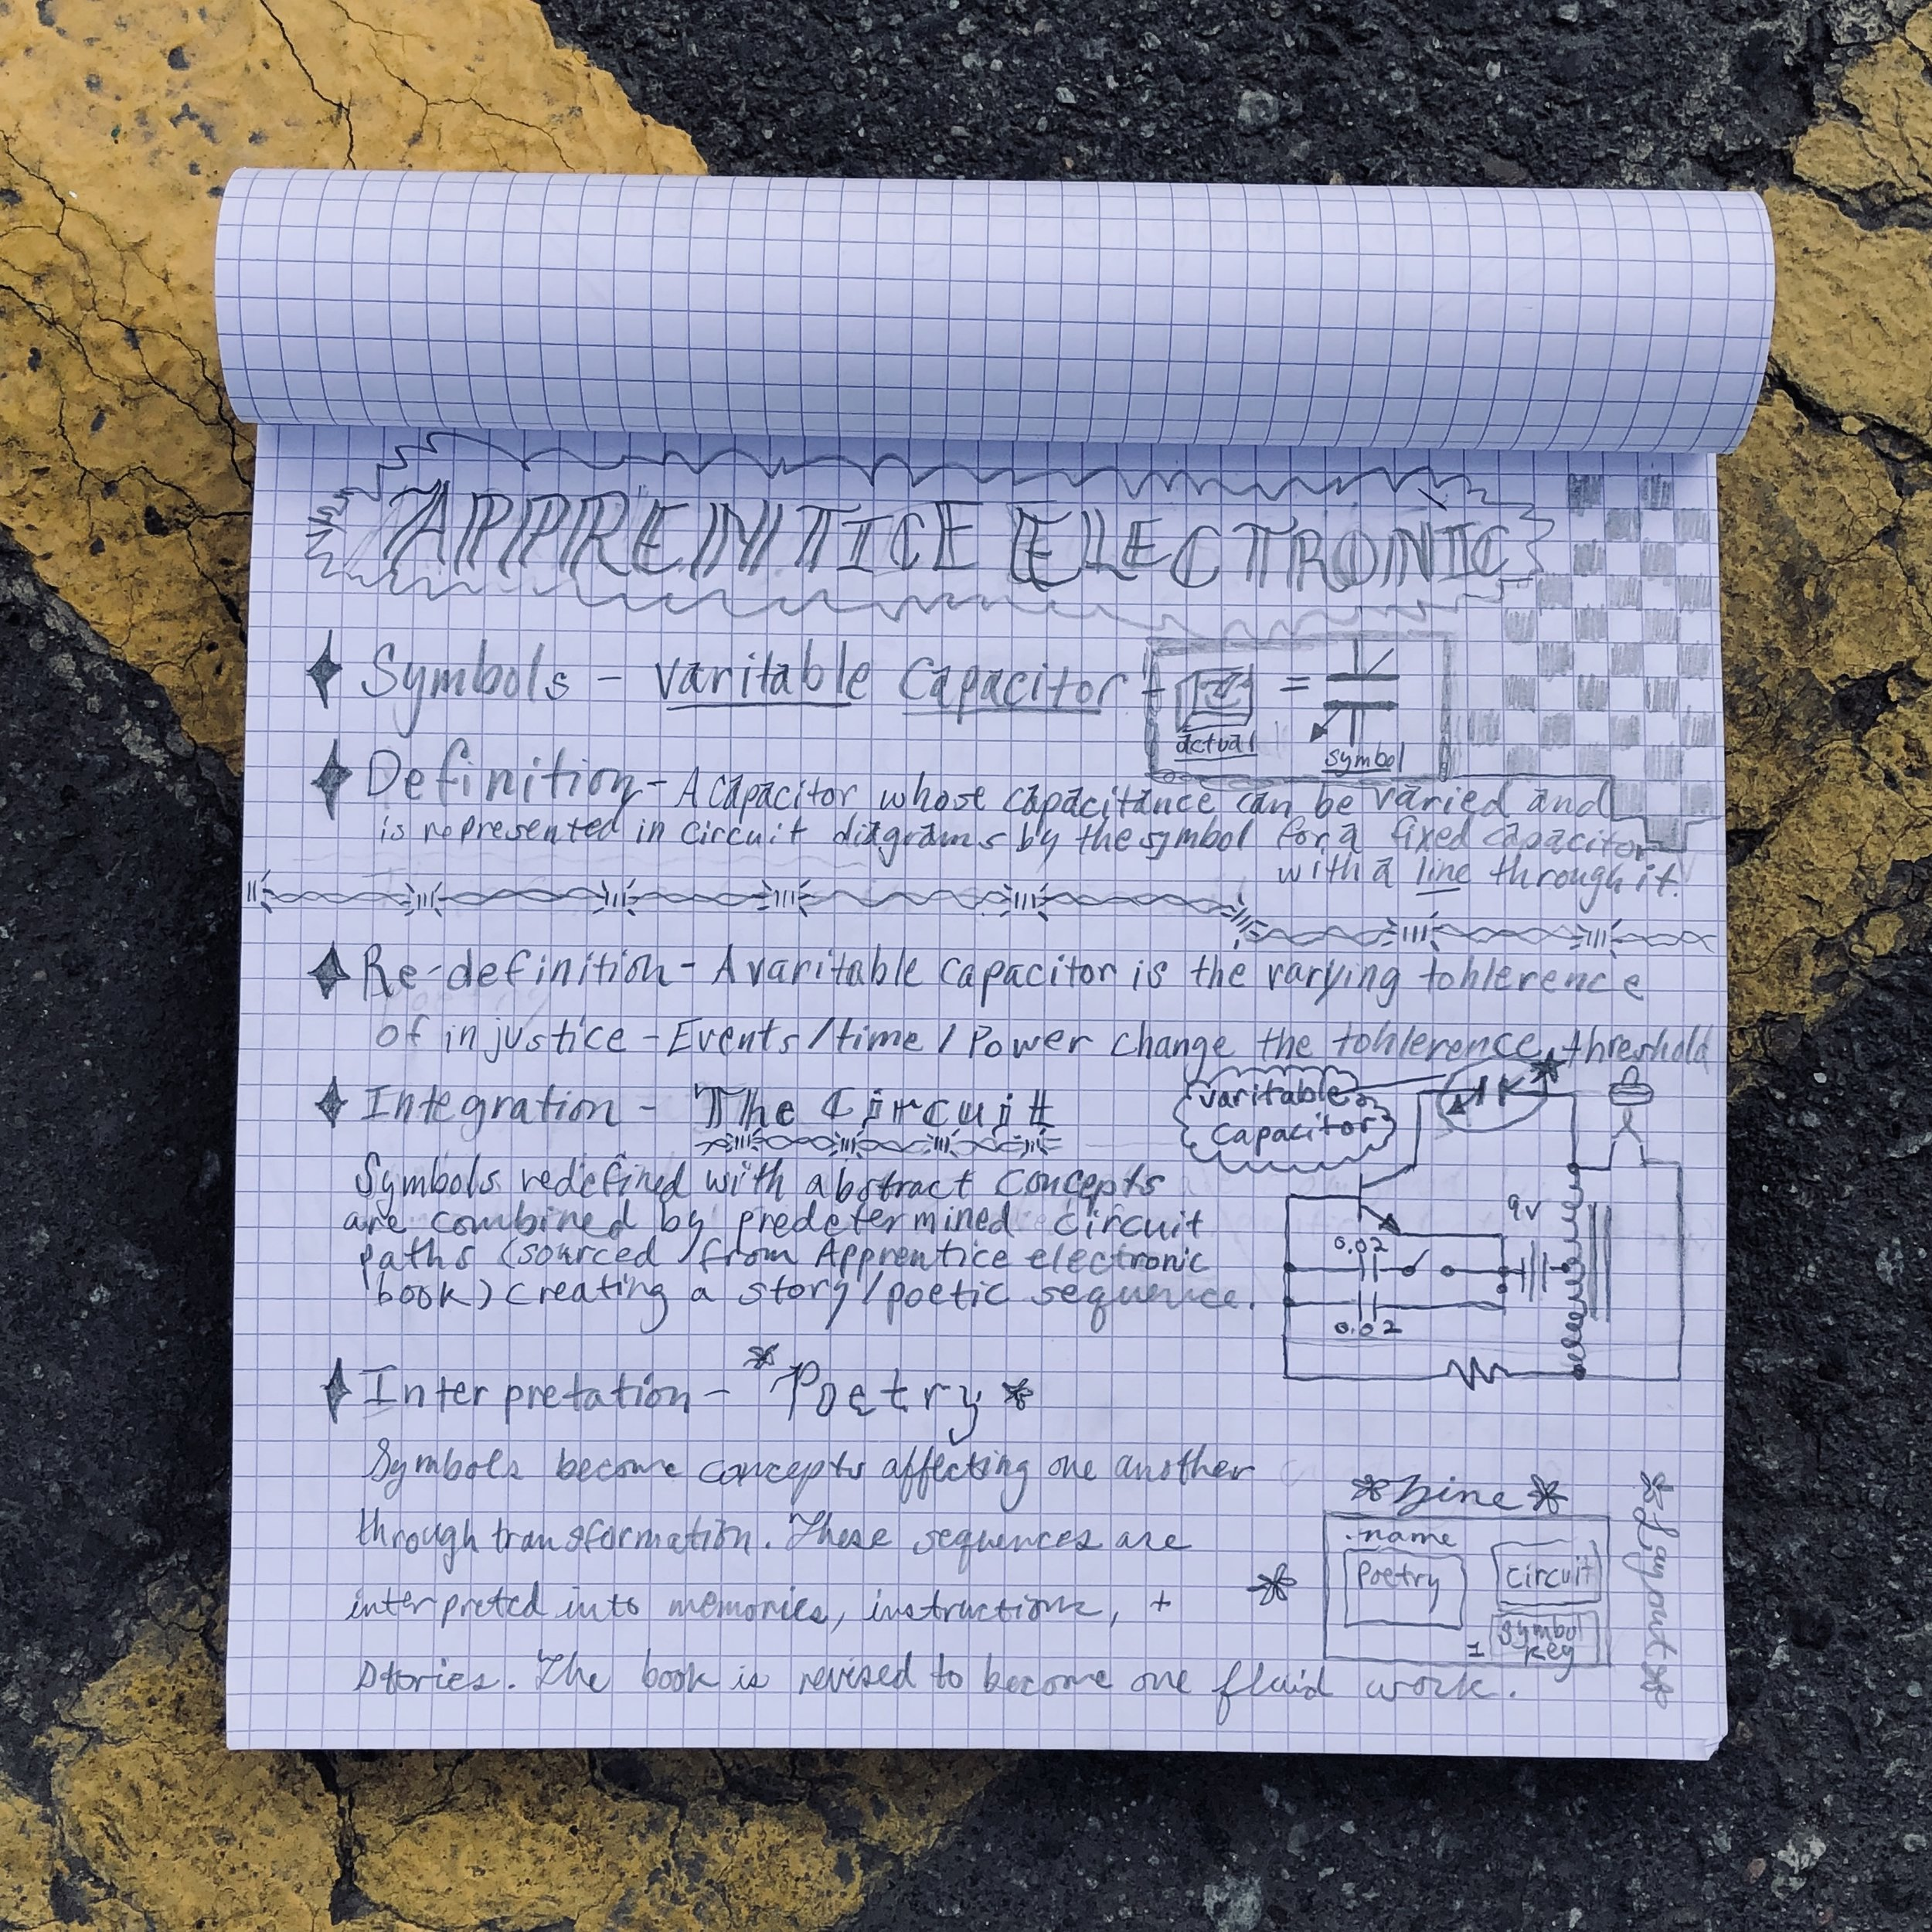 Process of poetic transference and zine layout plan